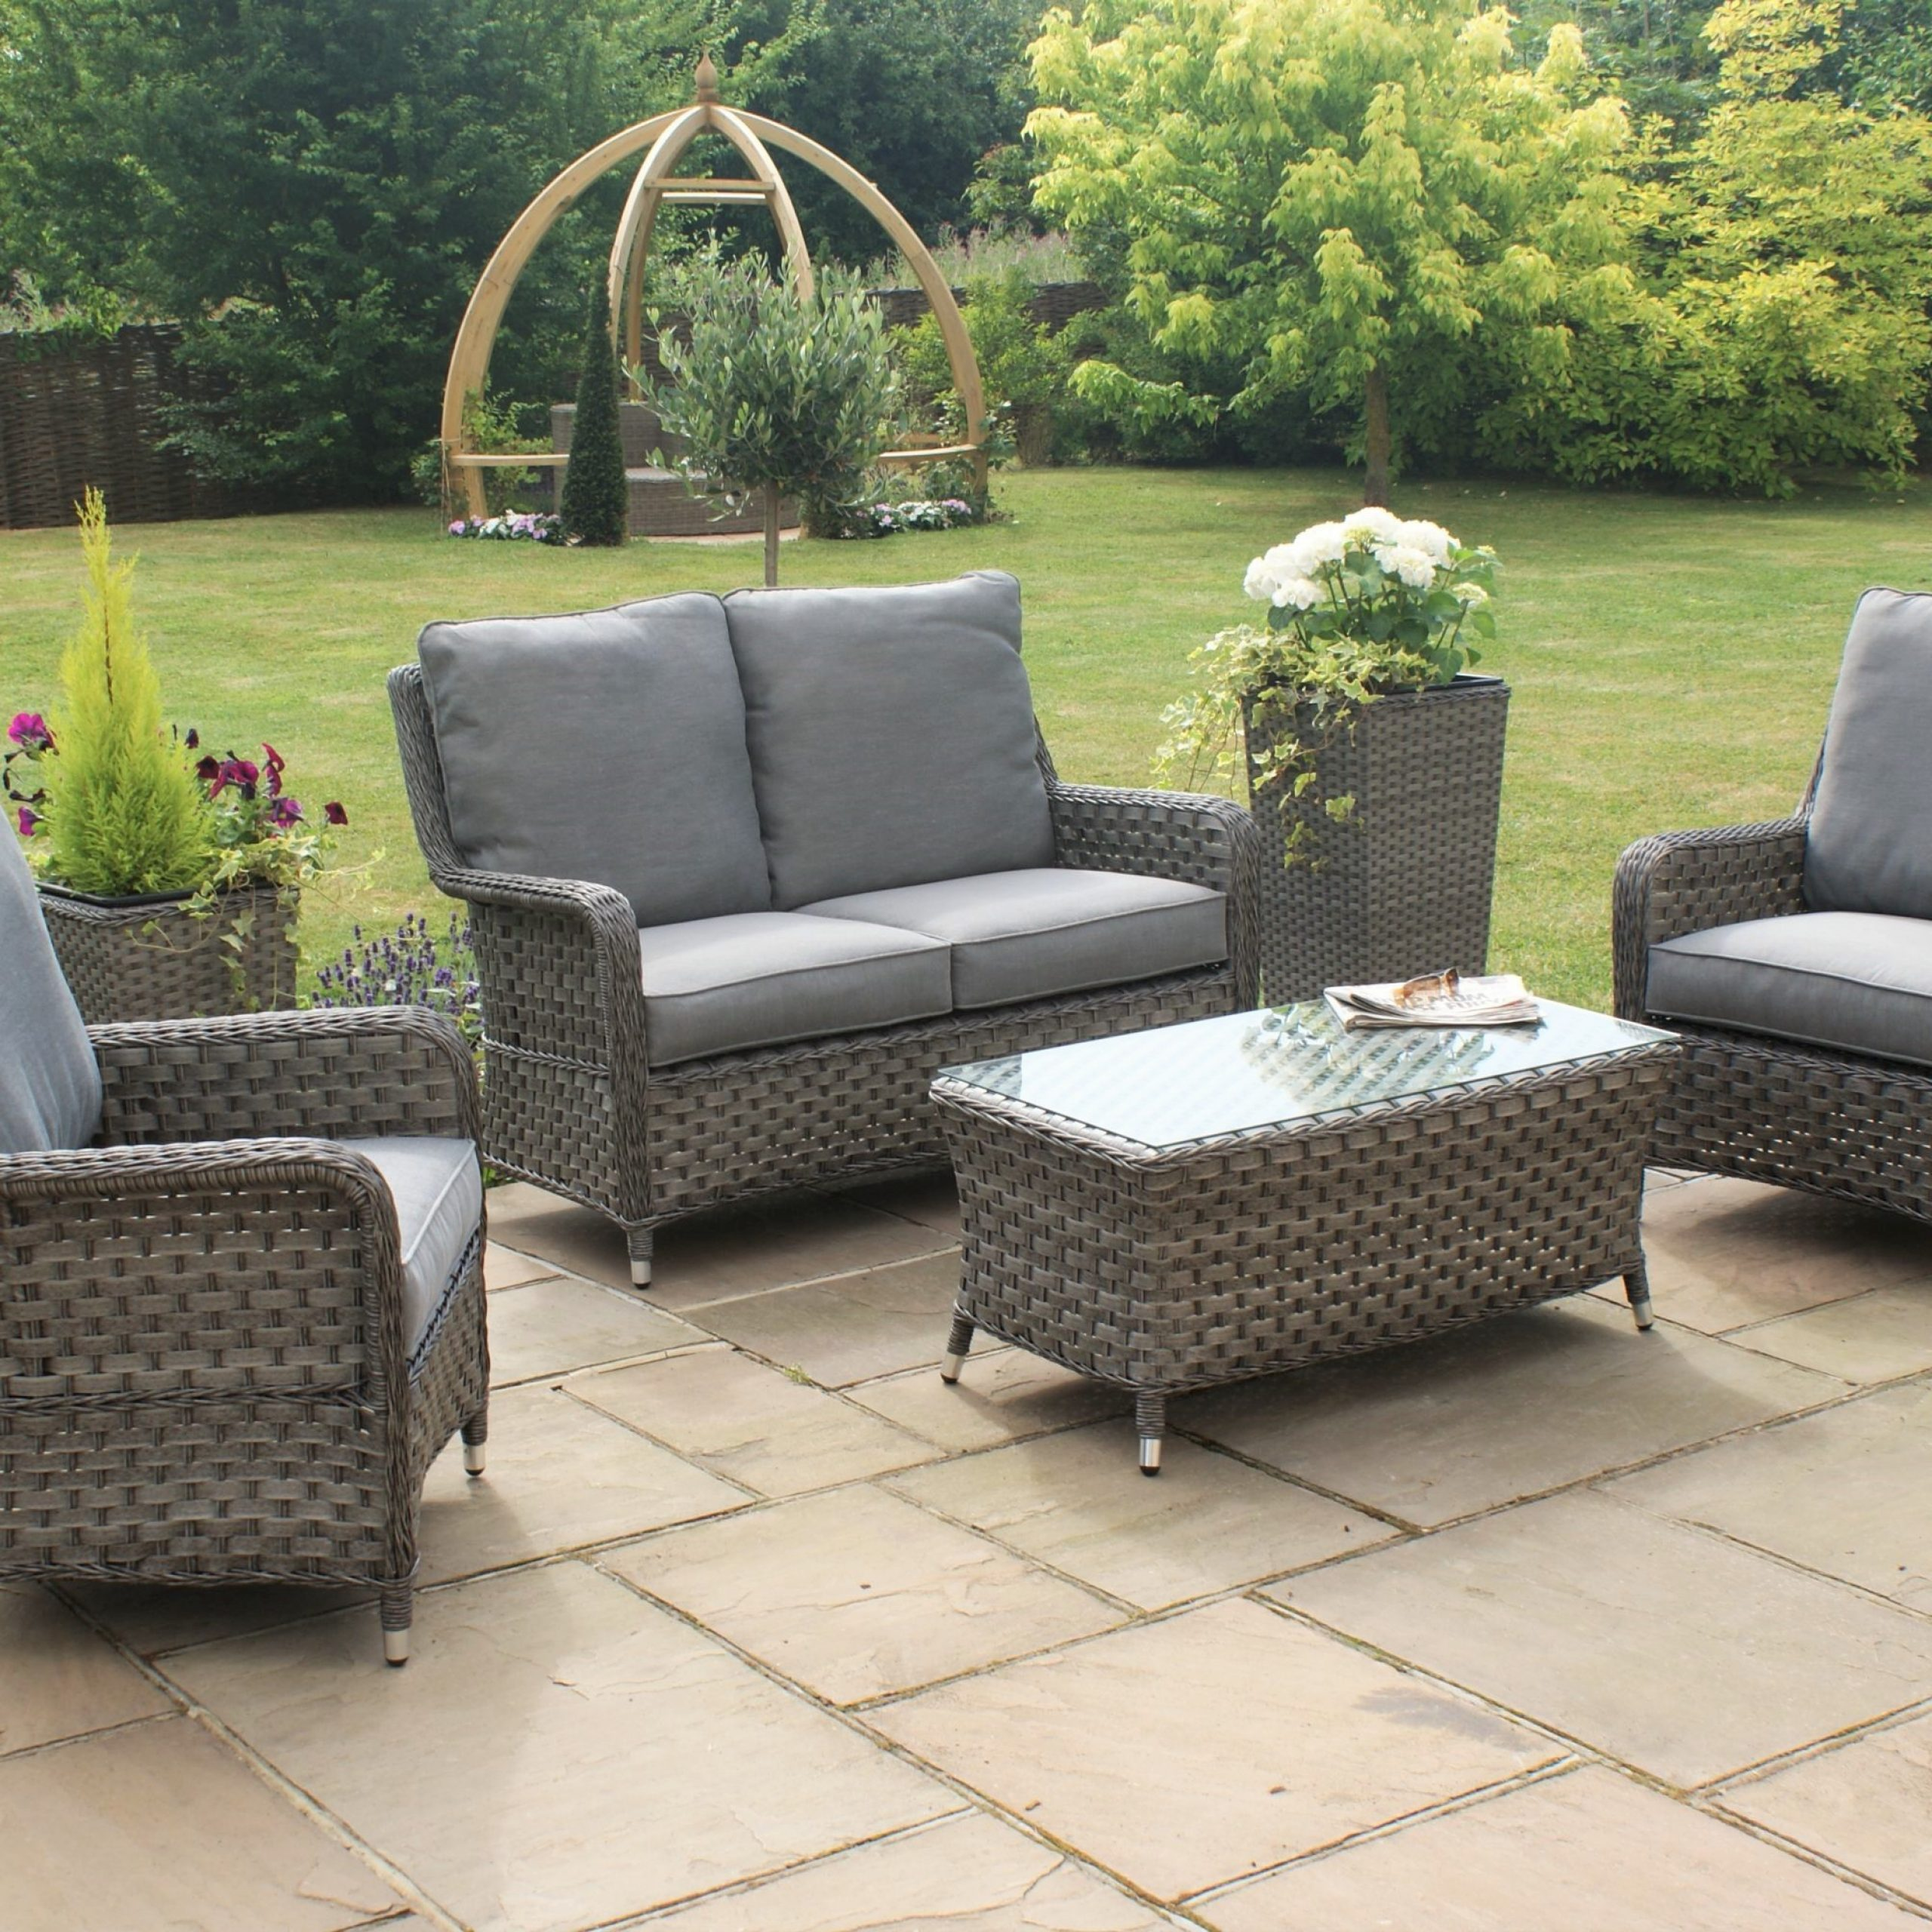 Maze Rattan Victoria 2 Seat High Back Sofa Set | Rattan Pertaining To Sofa With Chairs (View 15 of 15)